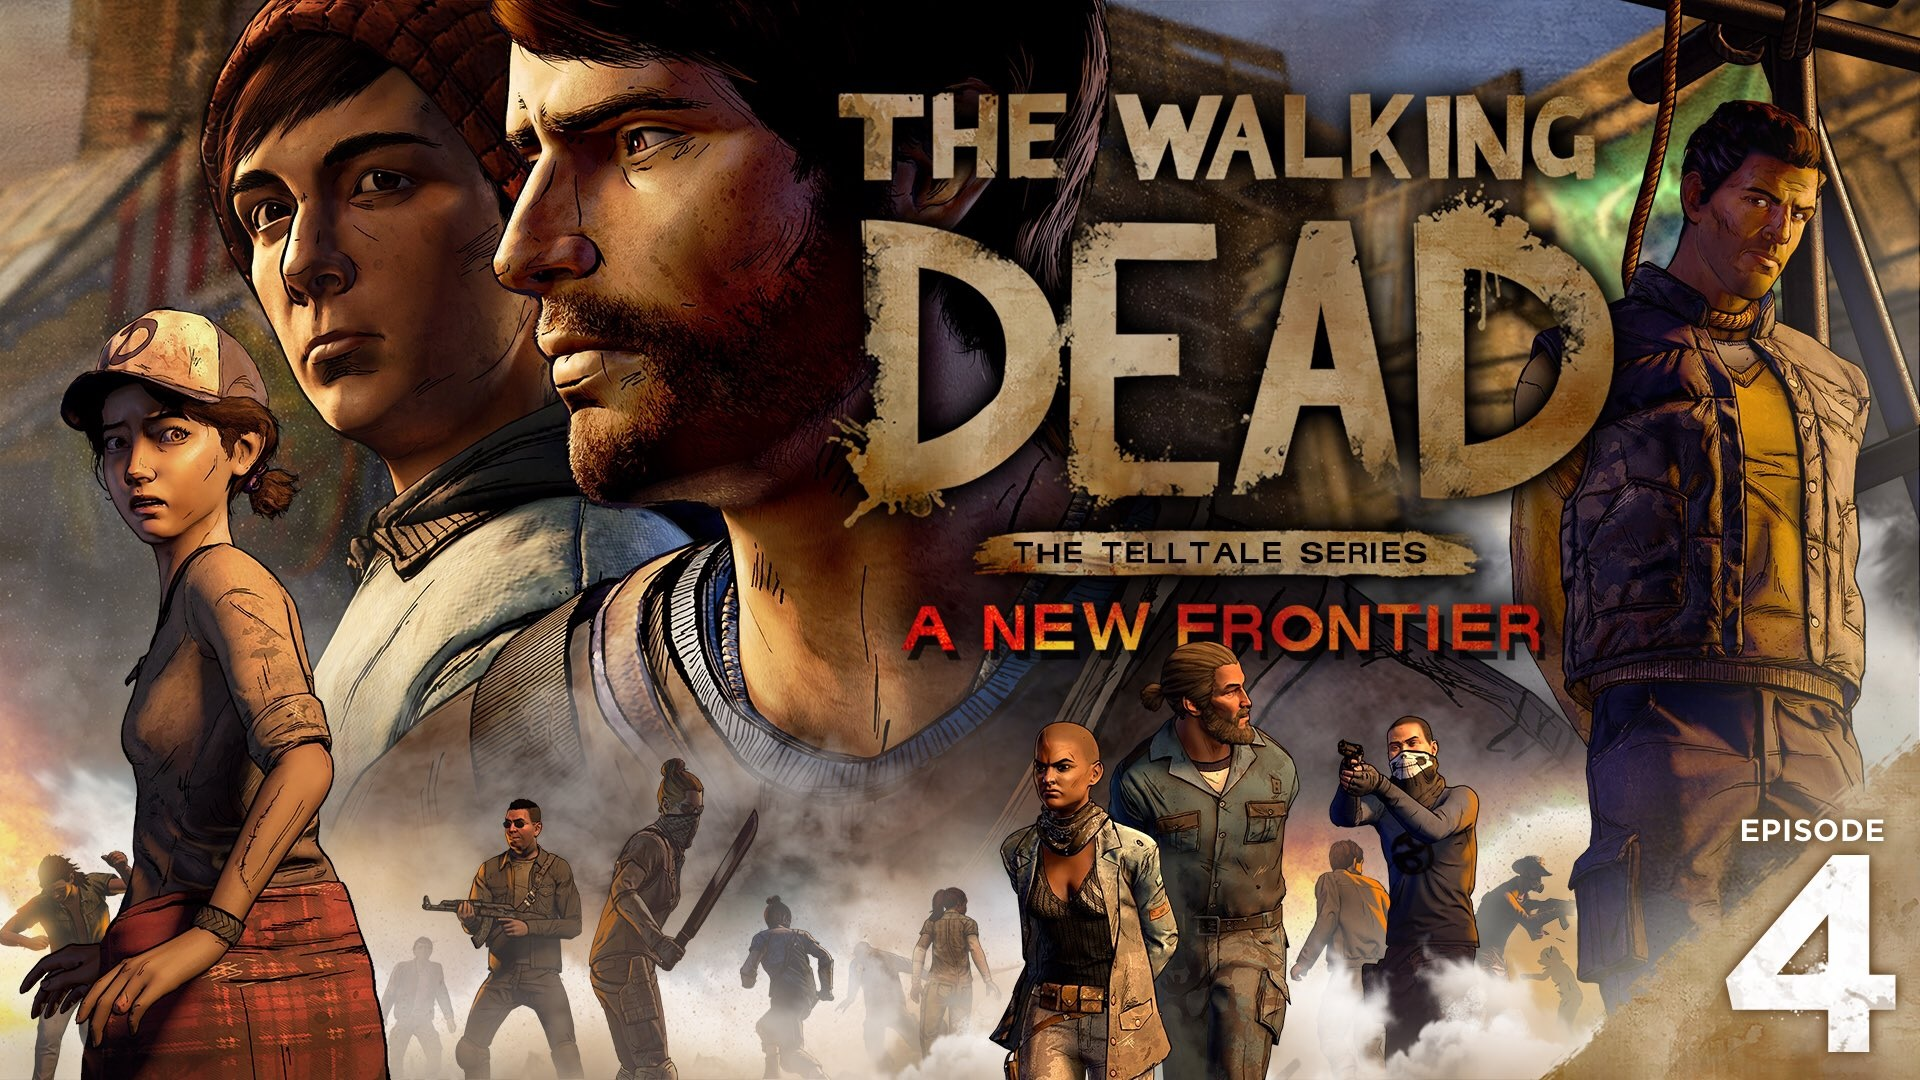 The Walking Dead No Man's Land on the App Store